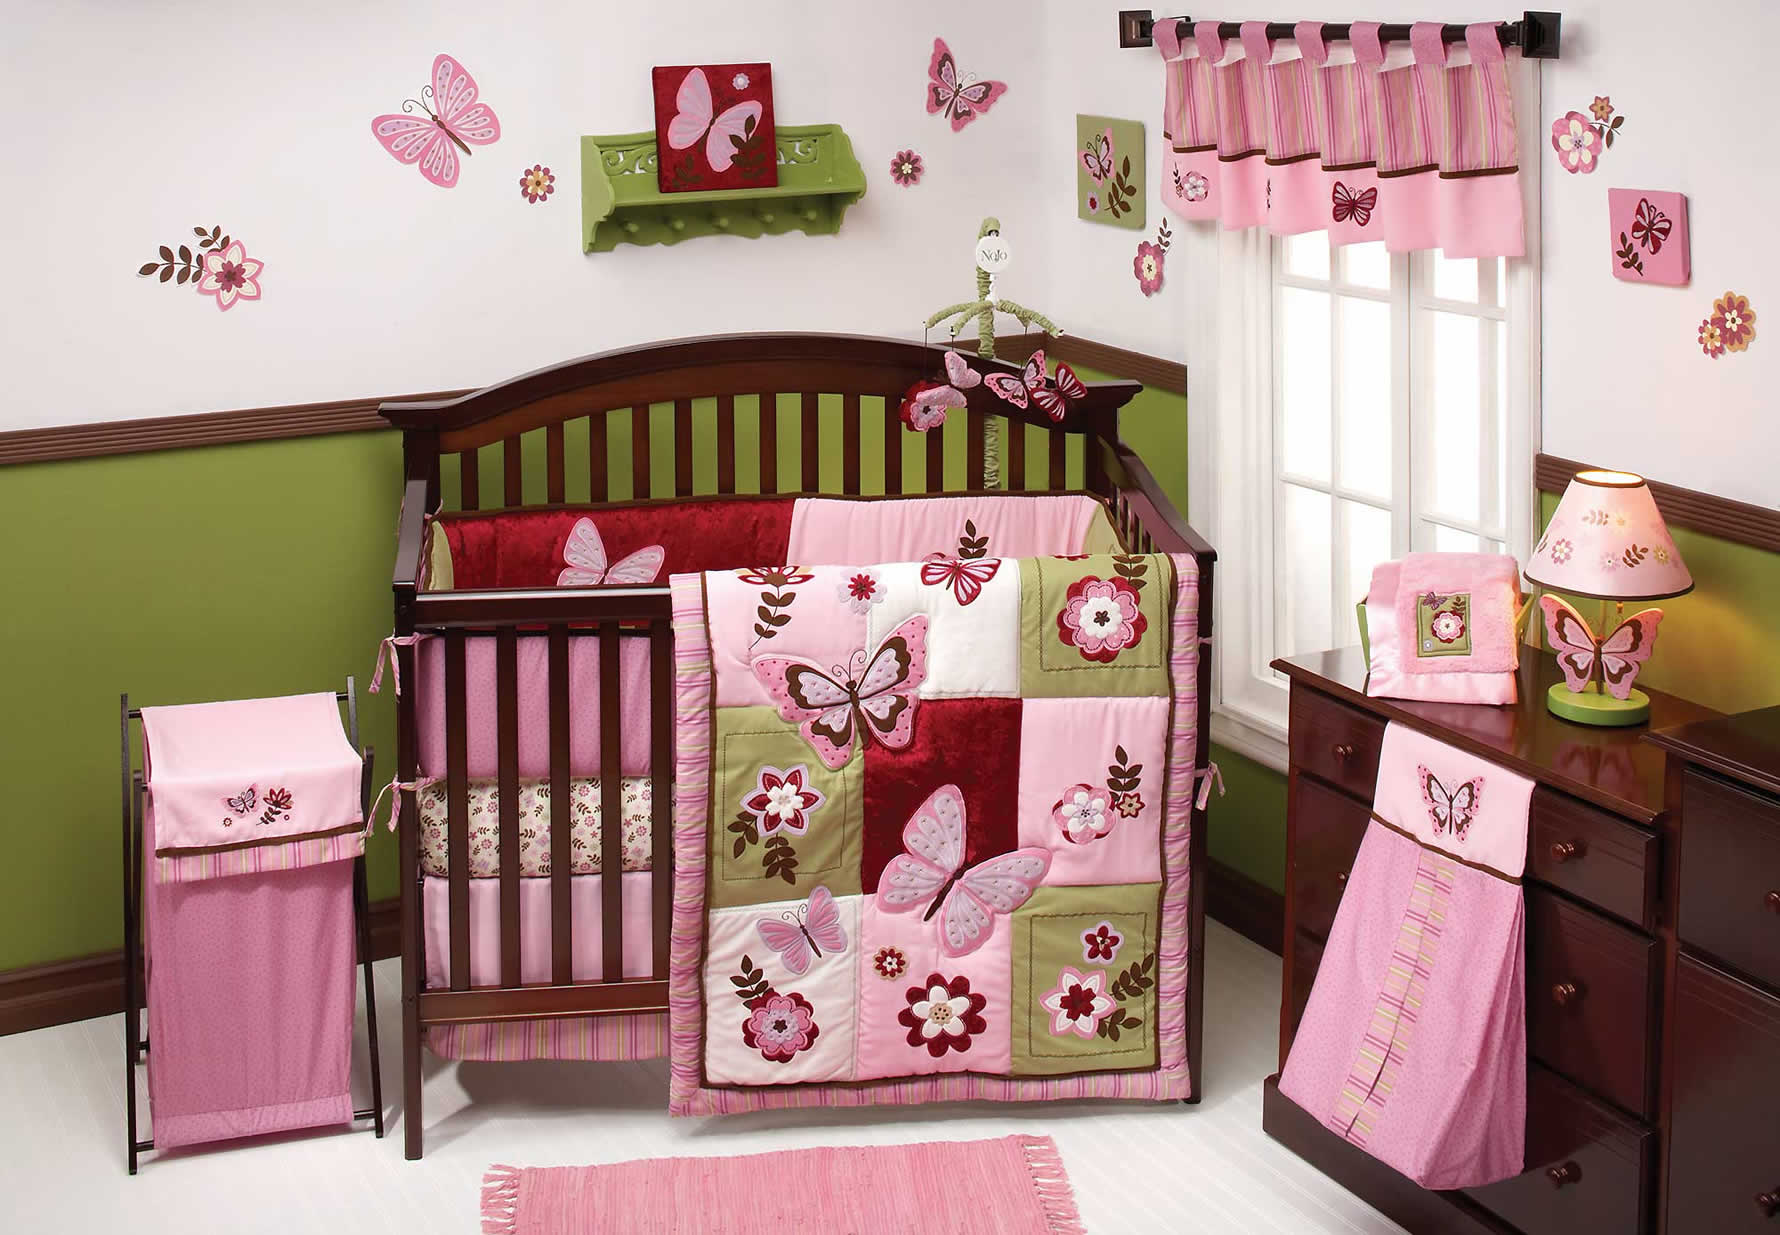 Best crib sheets for baby - Baby Crib Bedding